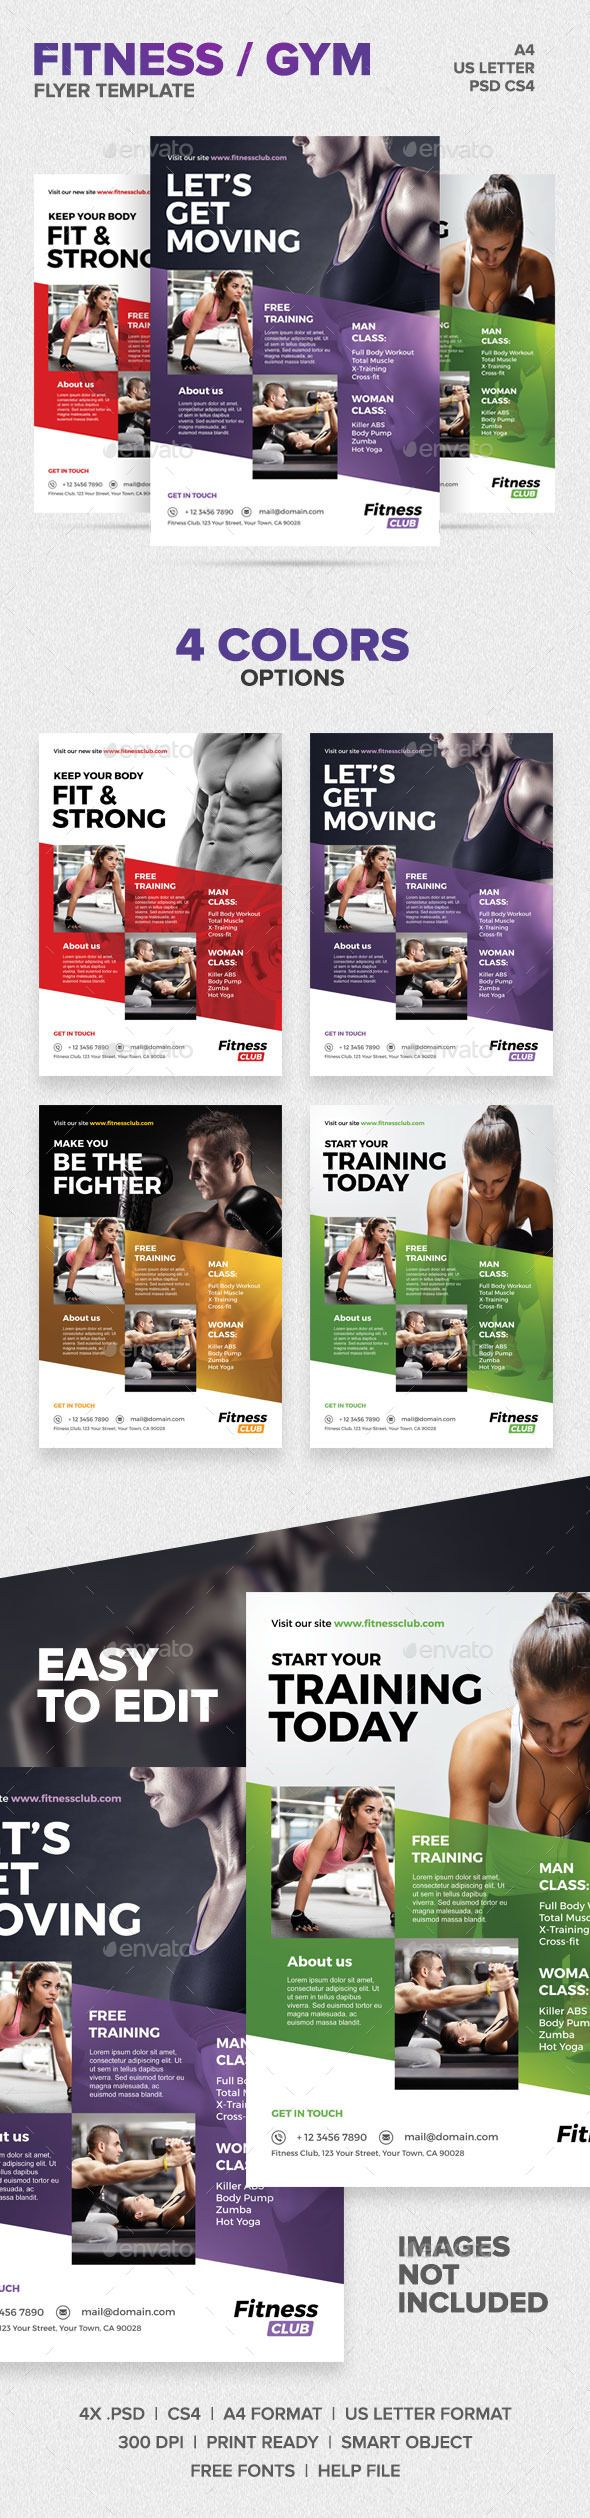 fitness gym flyer template creative health and creative flyers buy fitness gym flyer template by artmotion on graphicriver this template is perfect for a fitness center personal training that needs a modern